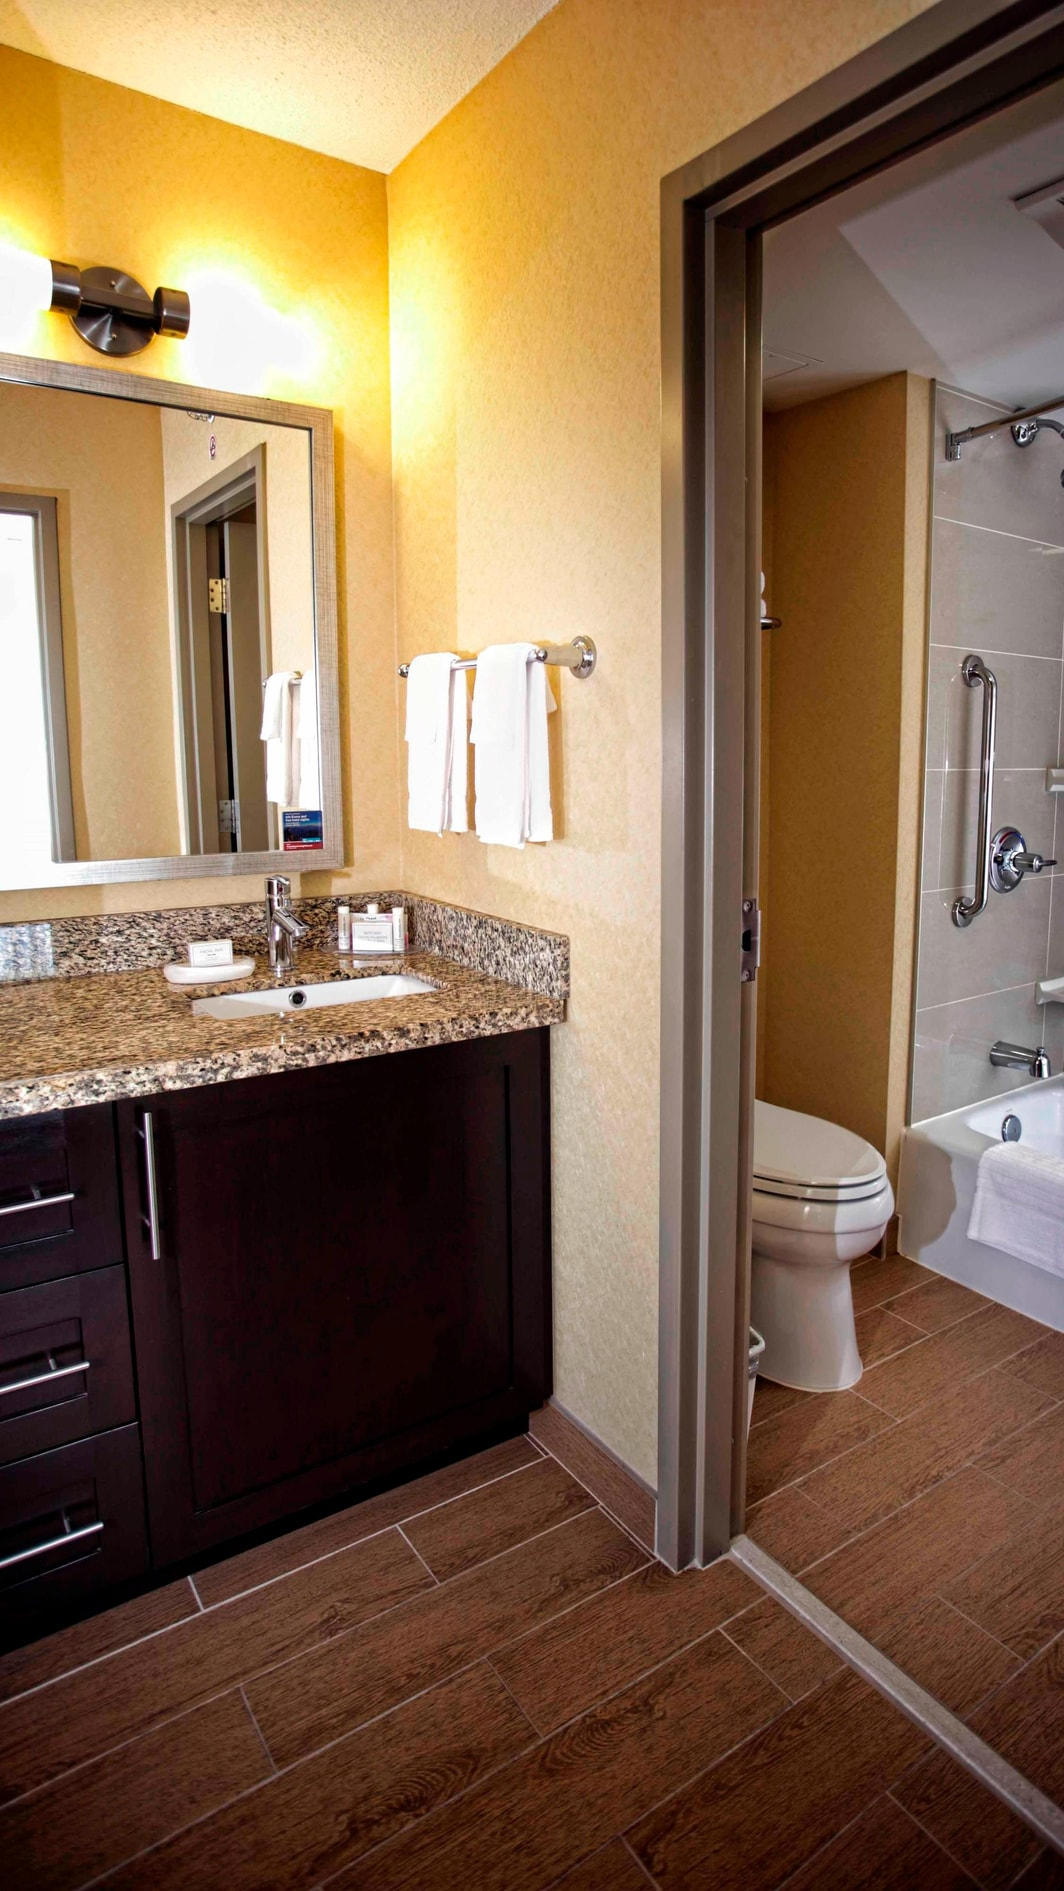 TownePlace Suites Bathroom 1